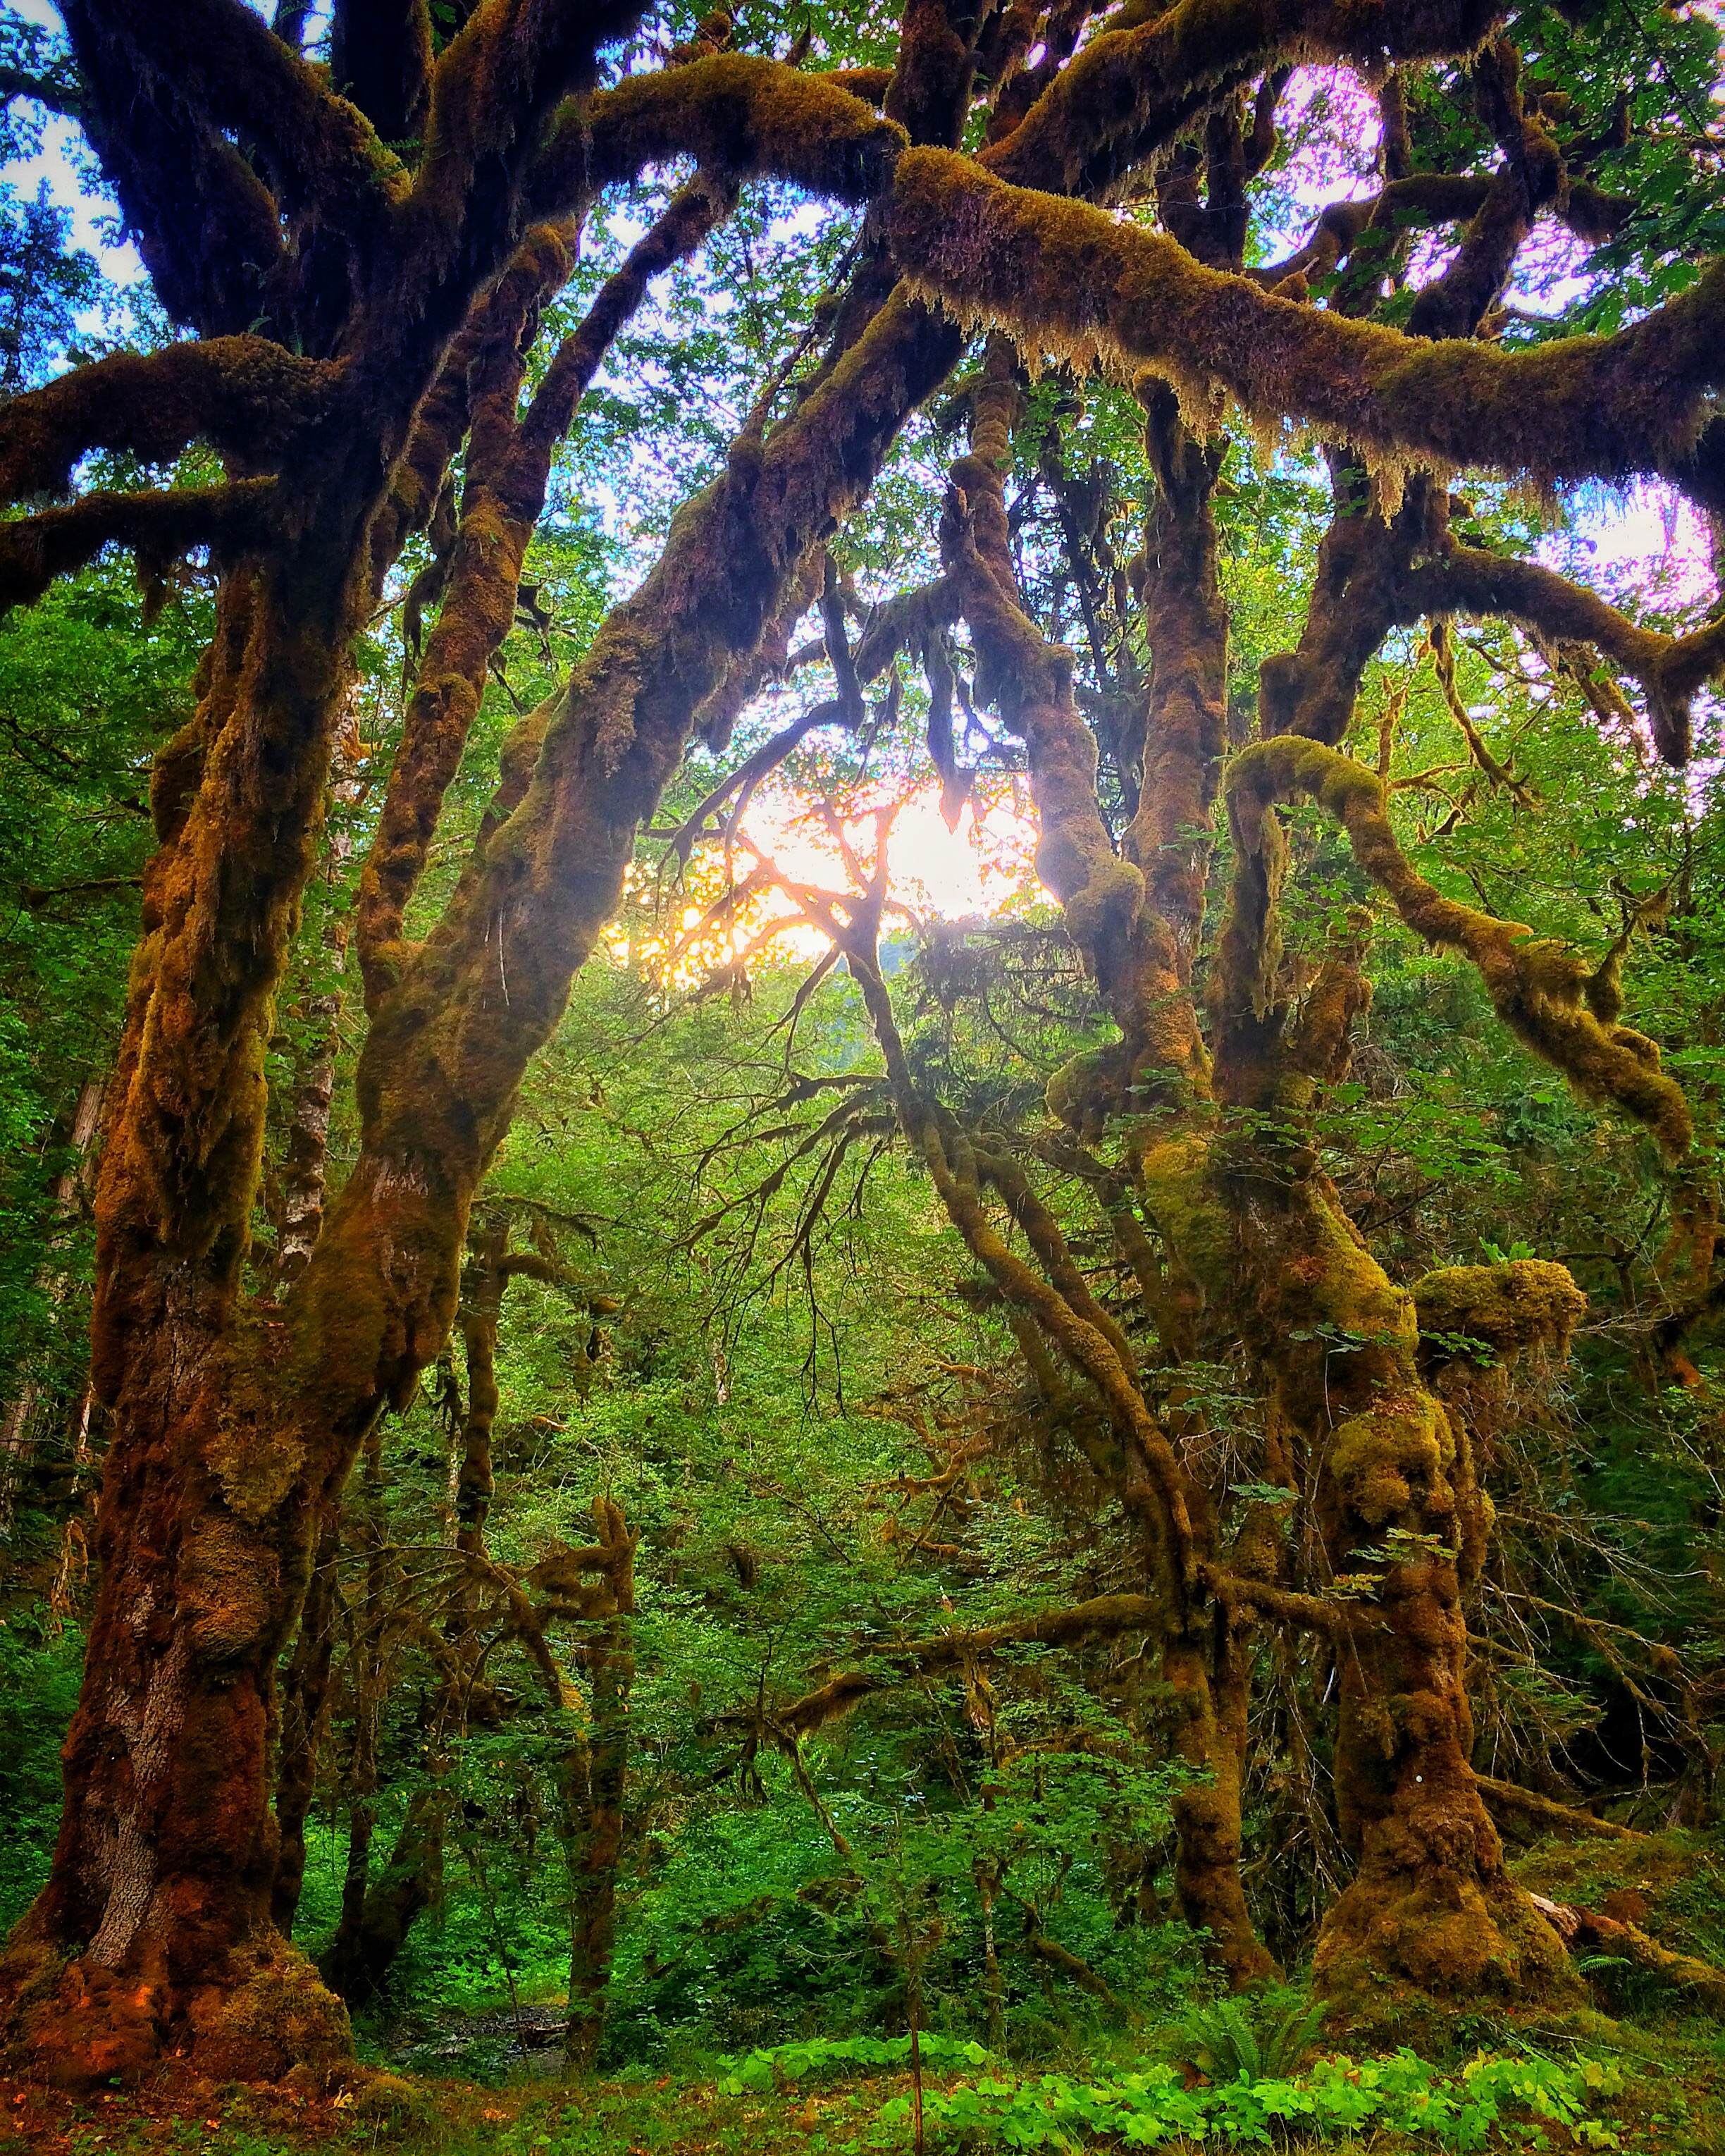 No matter where you turn on the Olympic Peninsula, there are phantasmagorical wild areas that are amazing.